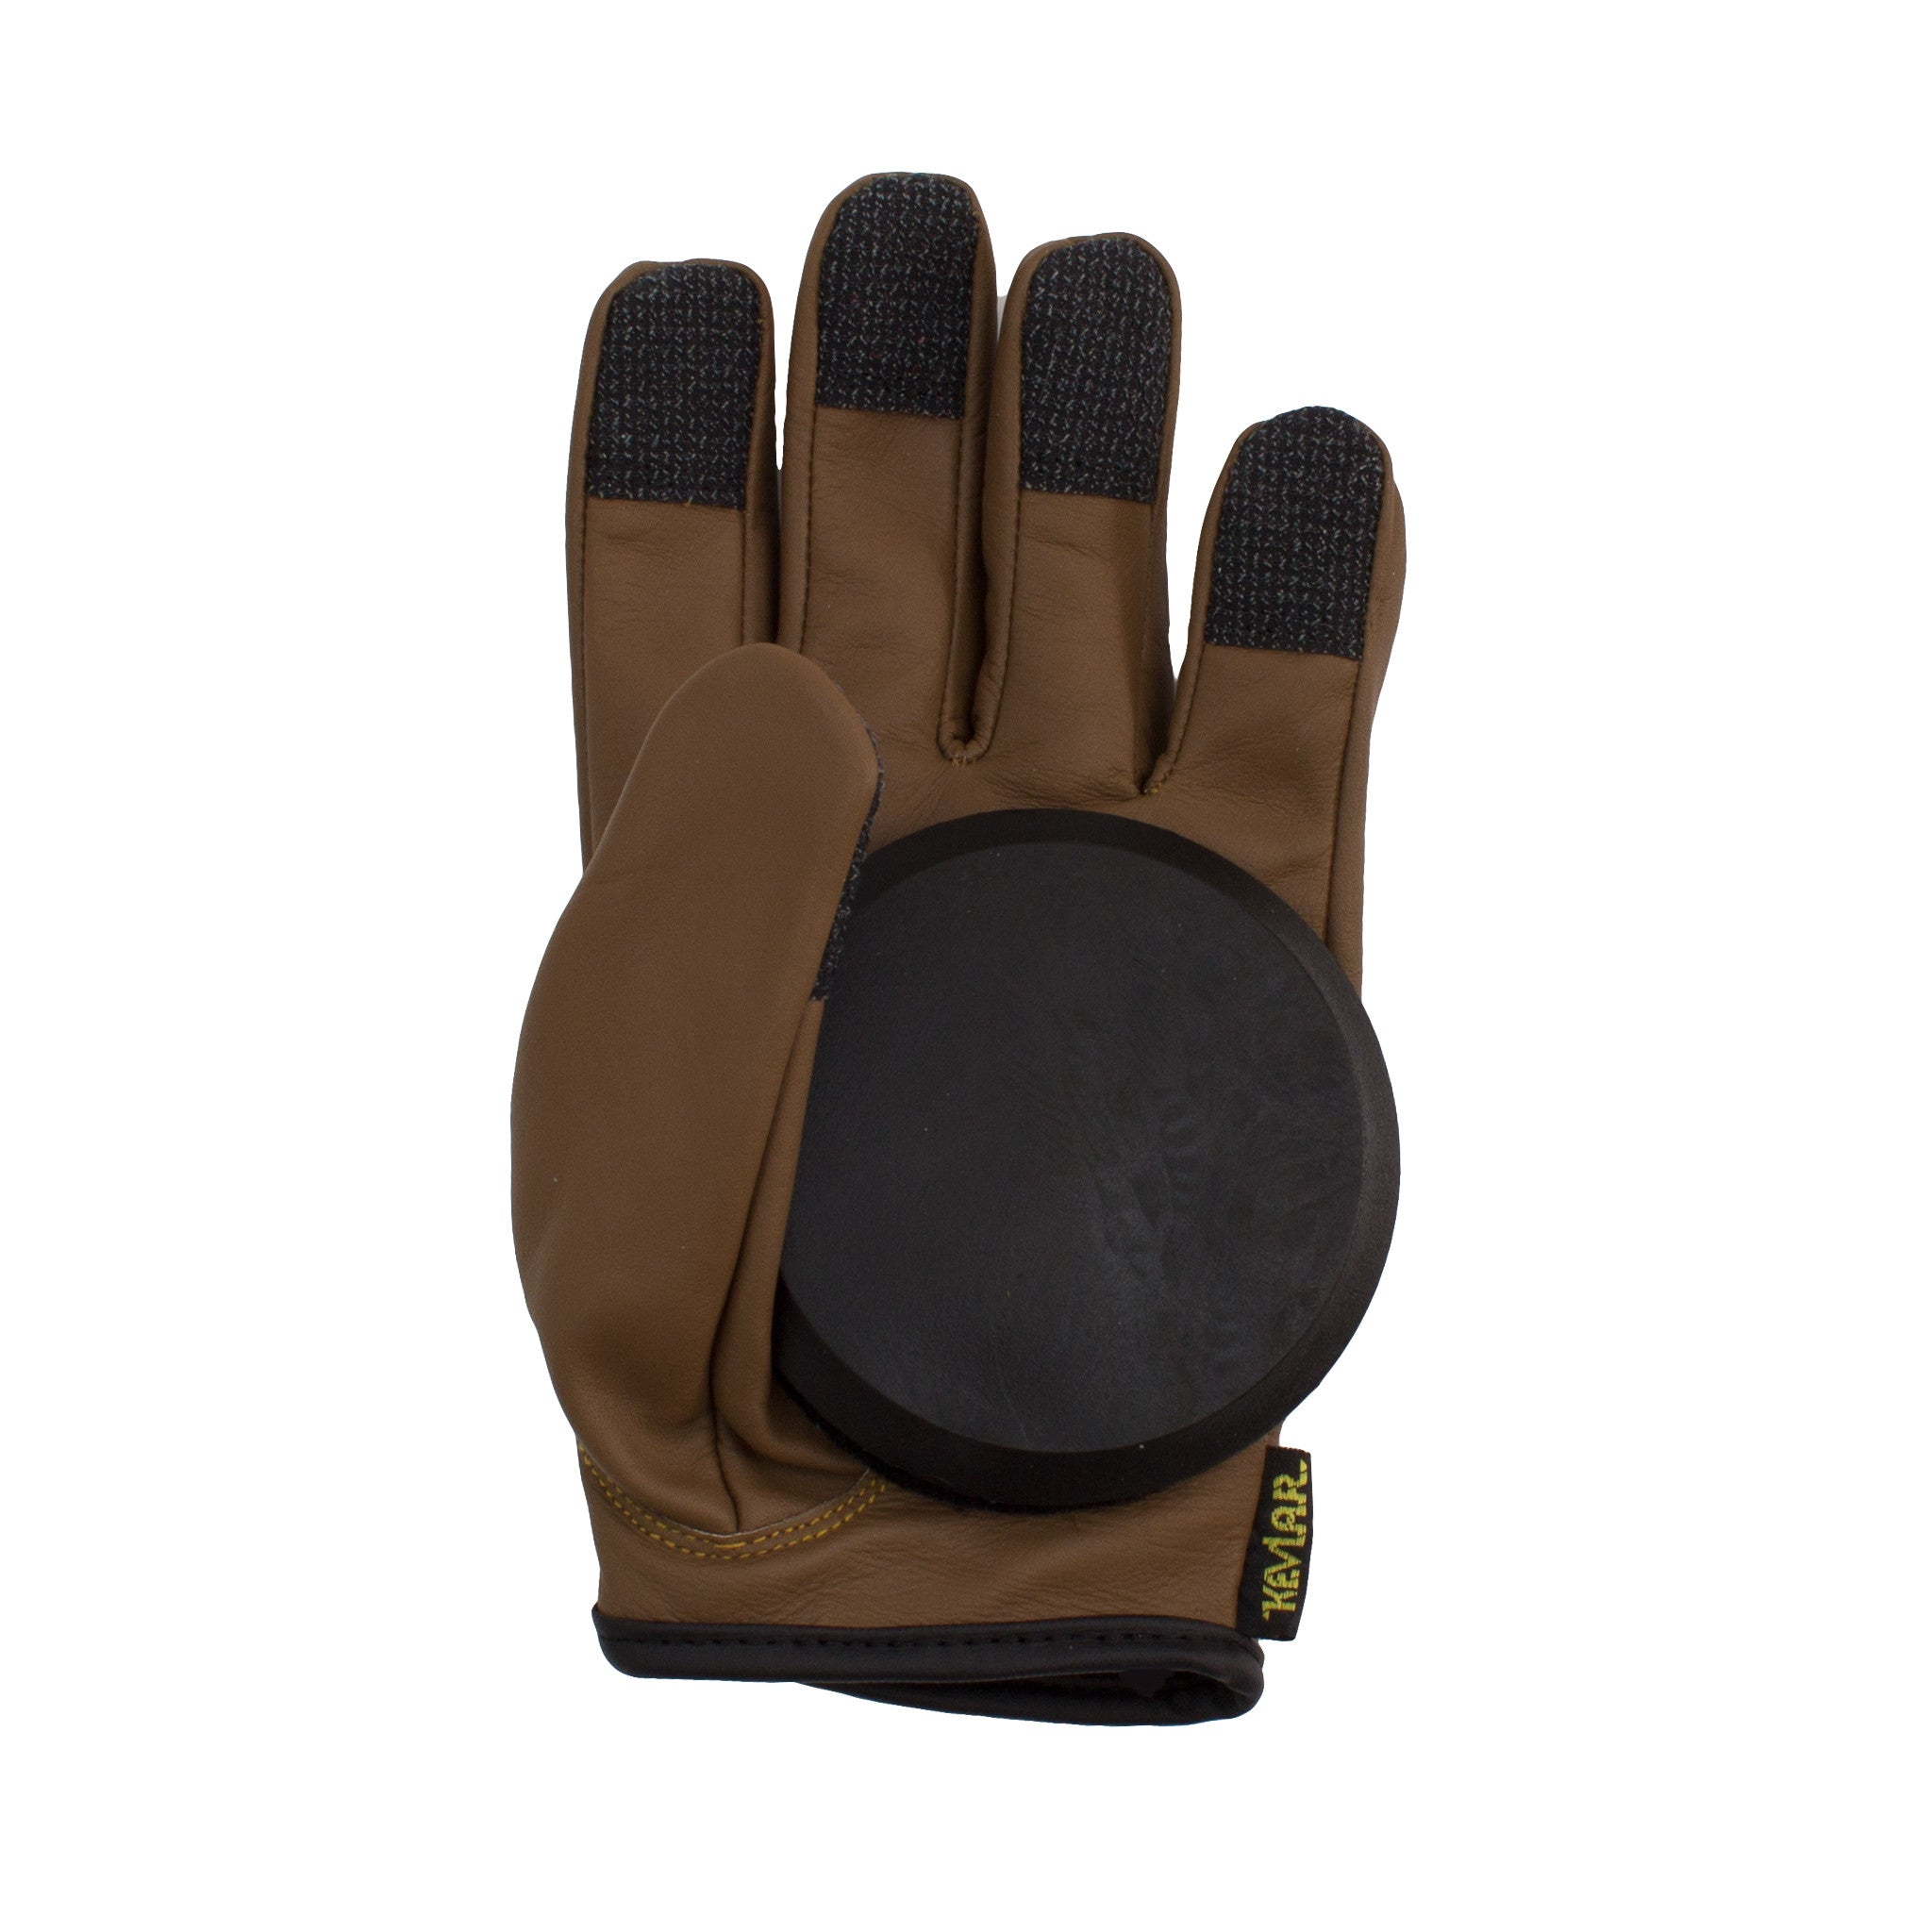 Lederen Slide Gloves Brown - Stoked Boardshop  - 3